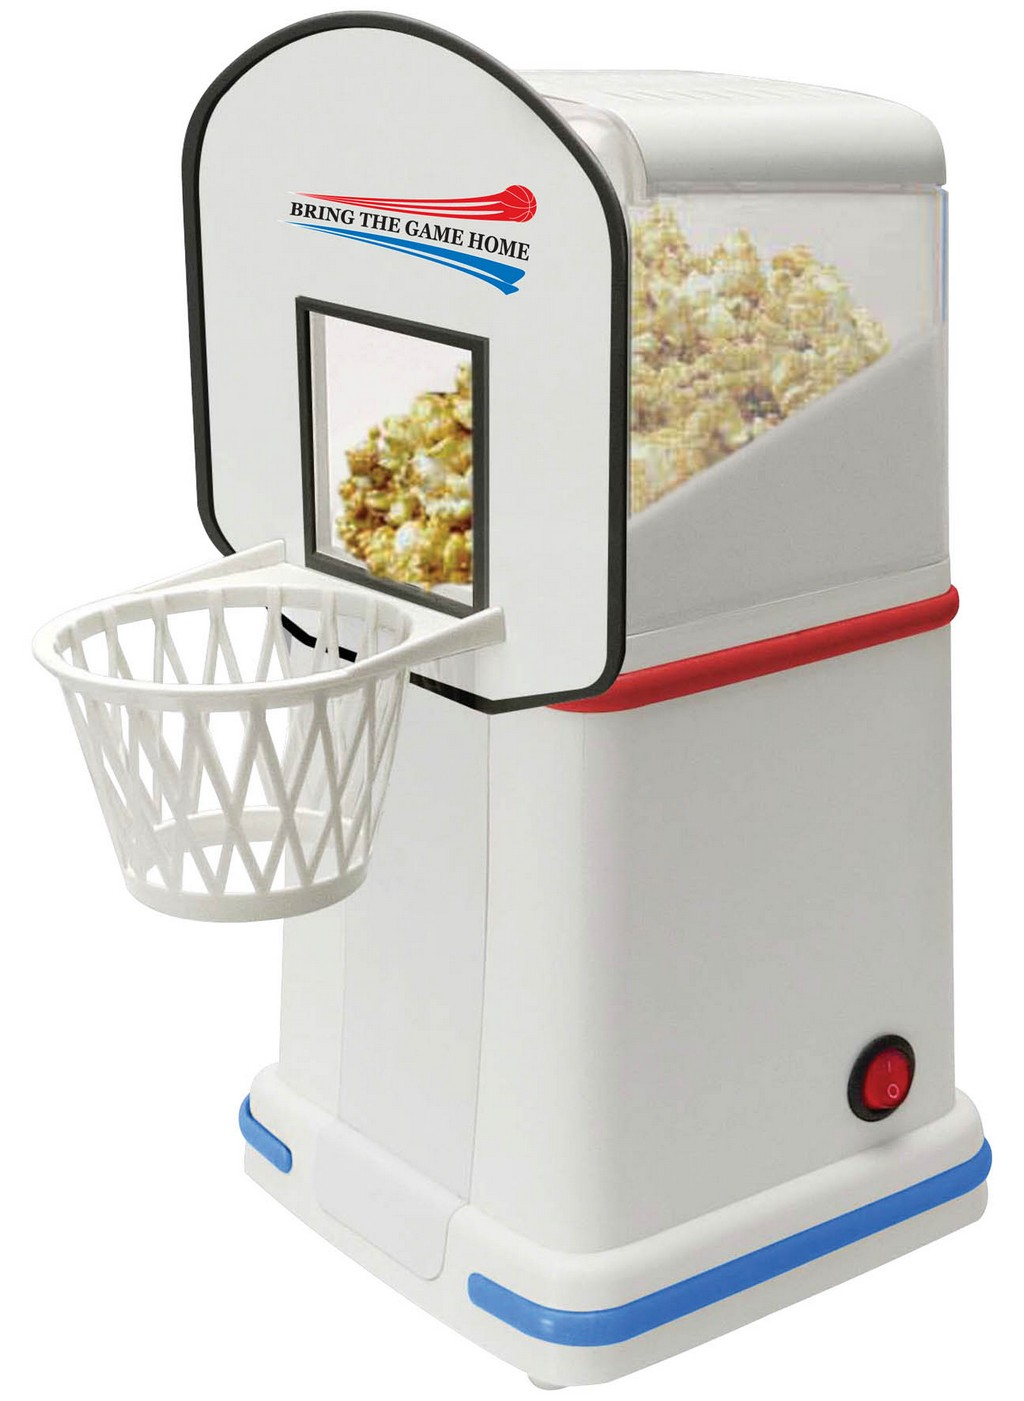 benchmark usa hollywood popcorn machine, commercial popcorn popper, used popcorn machine for sale